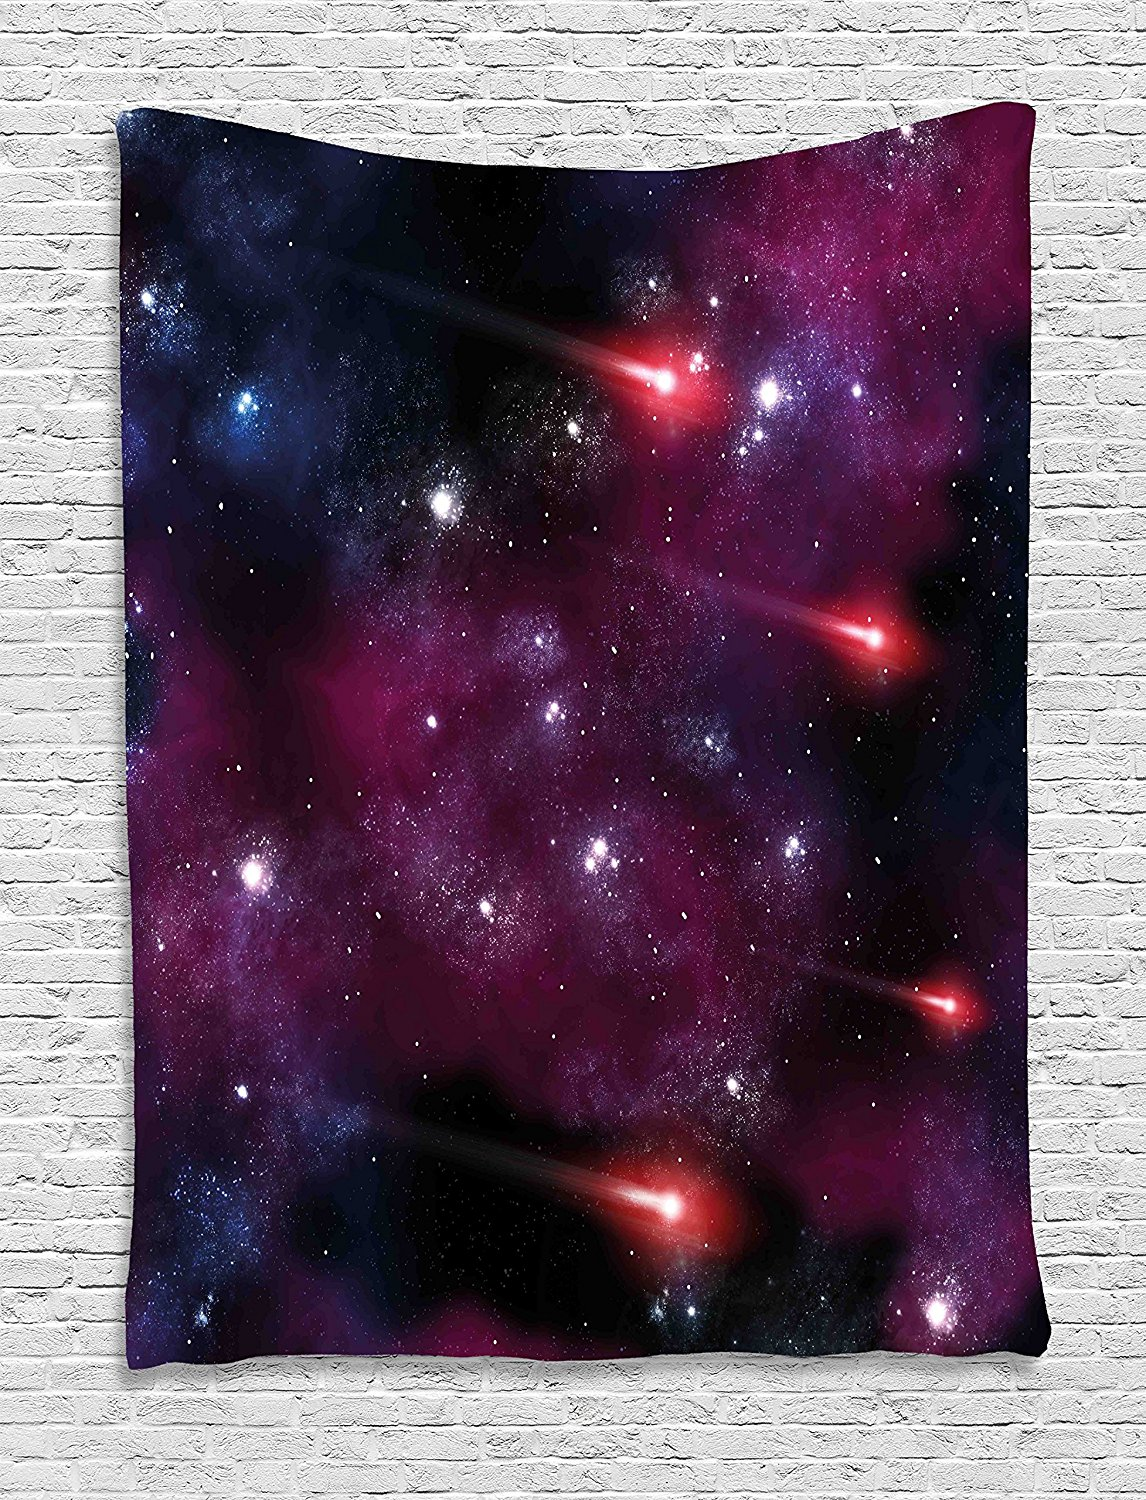 Space Tapestry Decor Four Comet on the Sky Stardust Meteor Shower Magical Wish Halo Scenery Wall Hanging